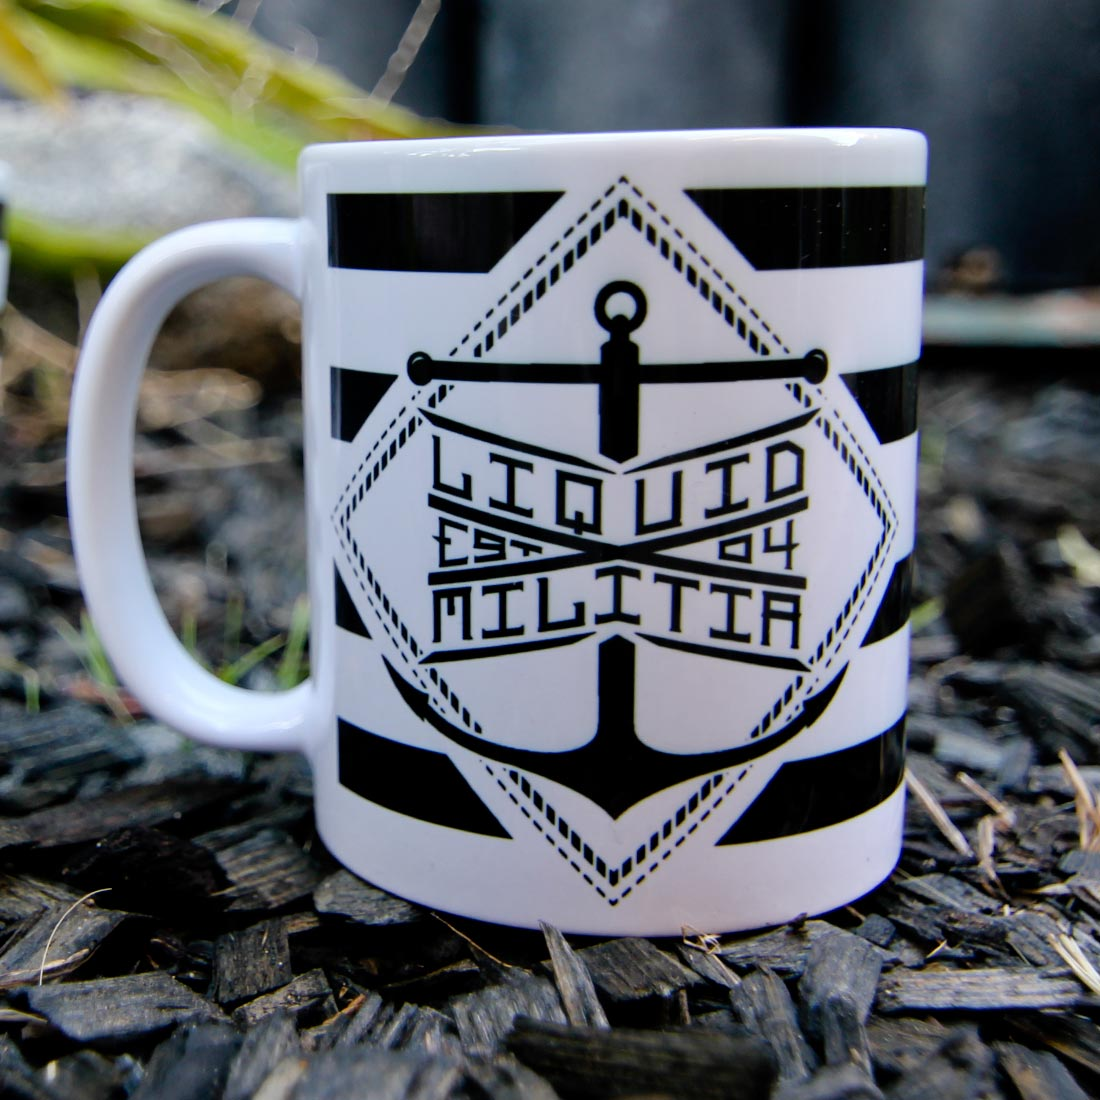 Liquid Militia tea mug anchor logo